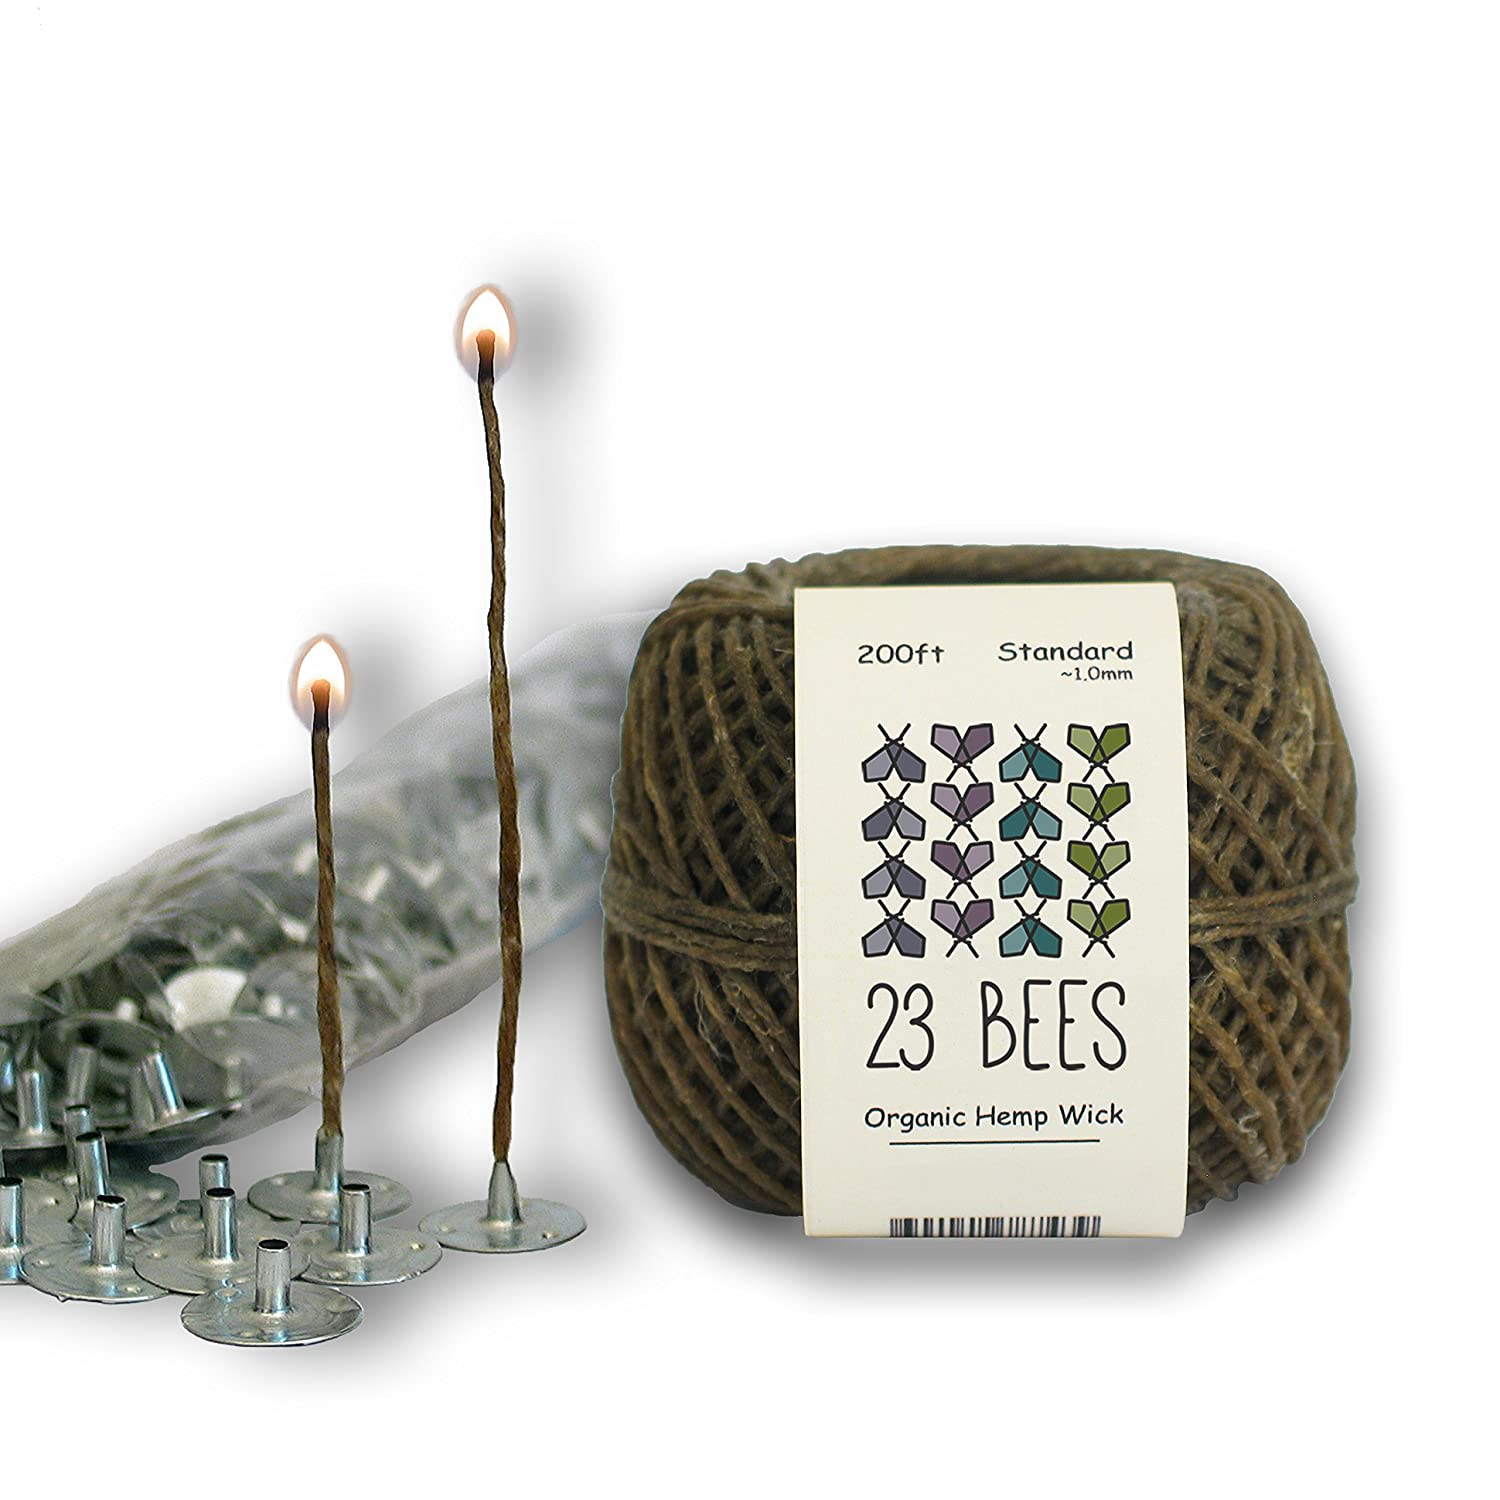 Organic Candle Making Bundle Kit   Organic Hemp Candle Wick + Natural Beeswax + Wick Sustainer Tabs   23 Bees (200ft(Standard) x 200pcs) TB200T200TAB